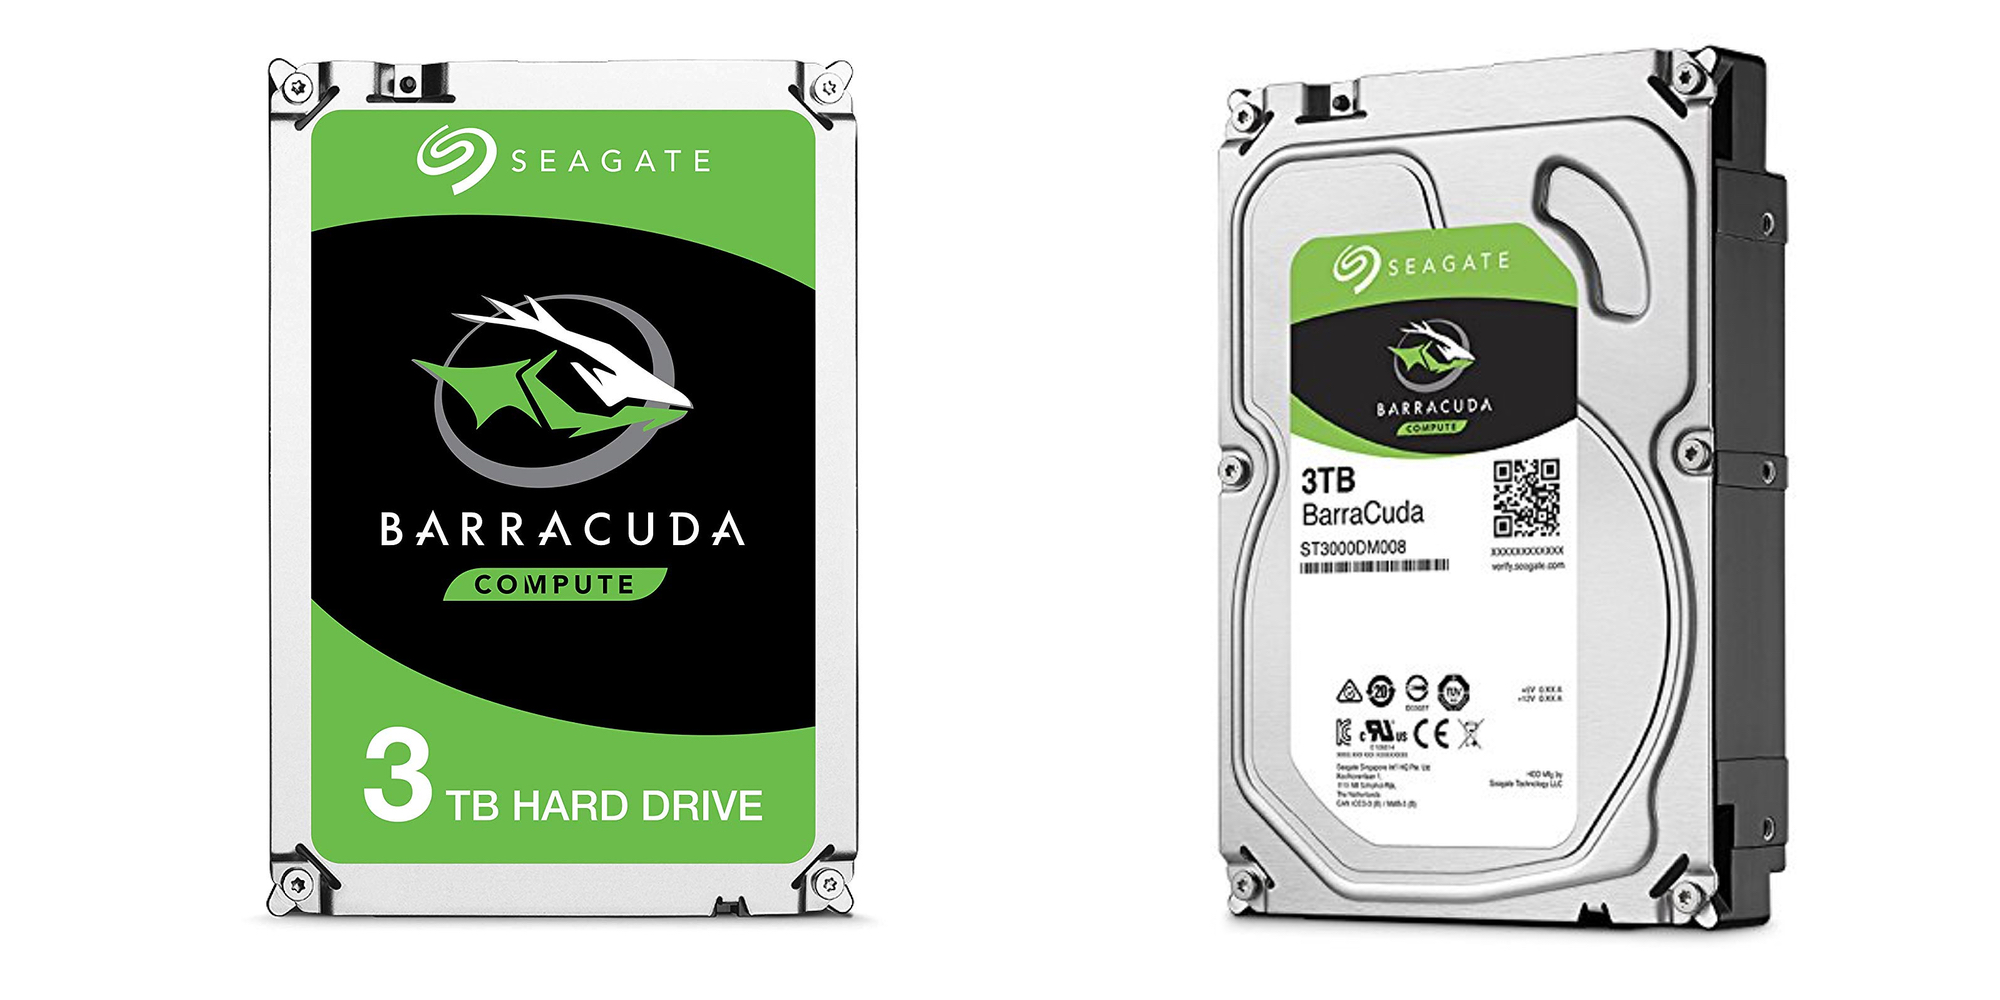 Seagate's BarraCuda 3TB Internal Hard Drive expands your computer or NAS for $70 (Save $15)